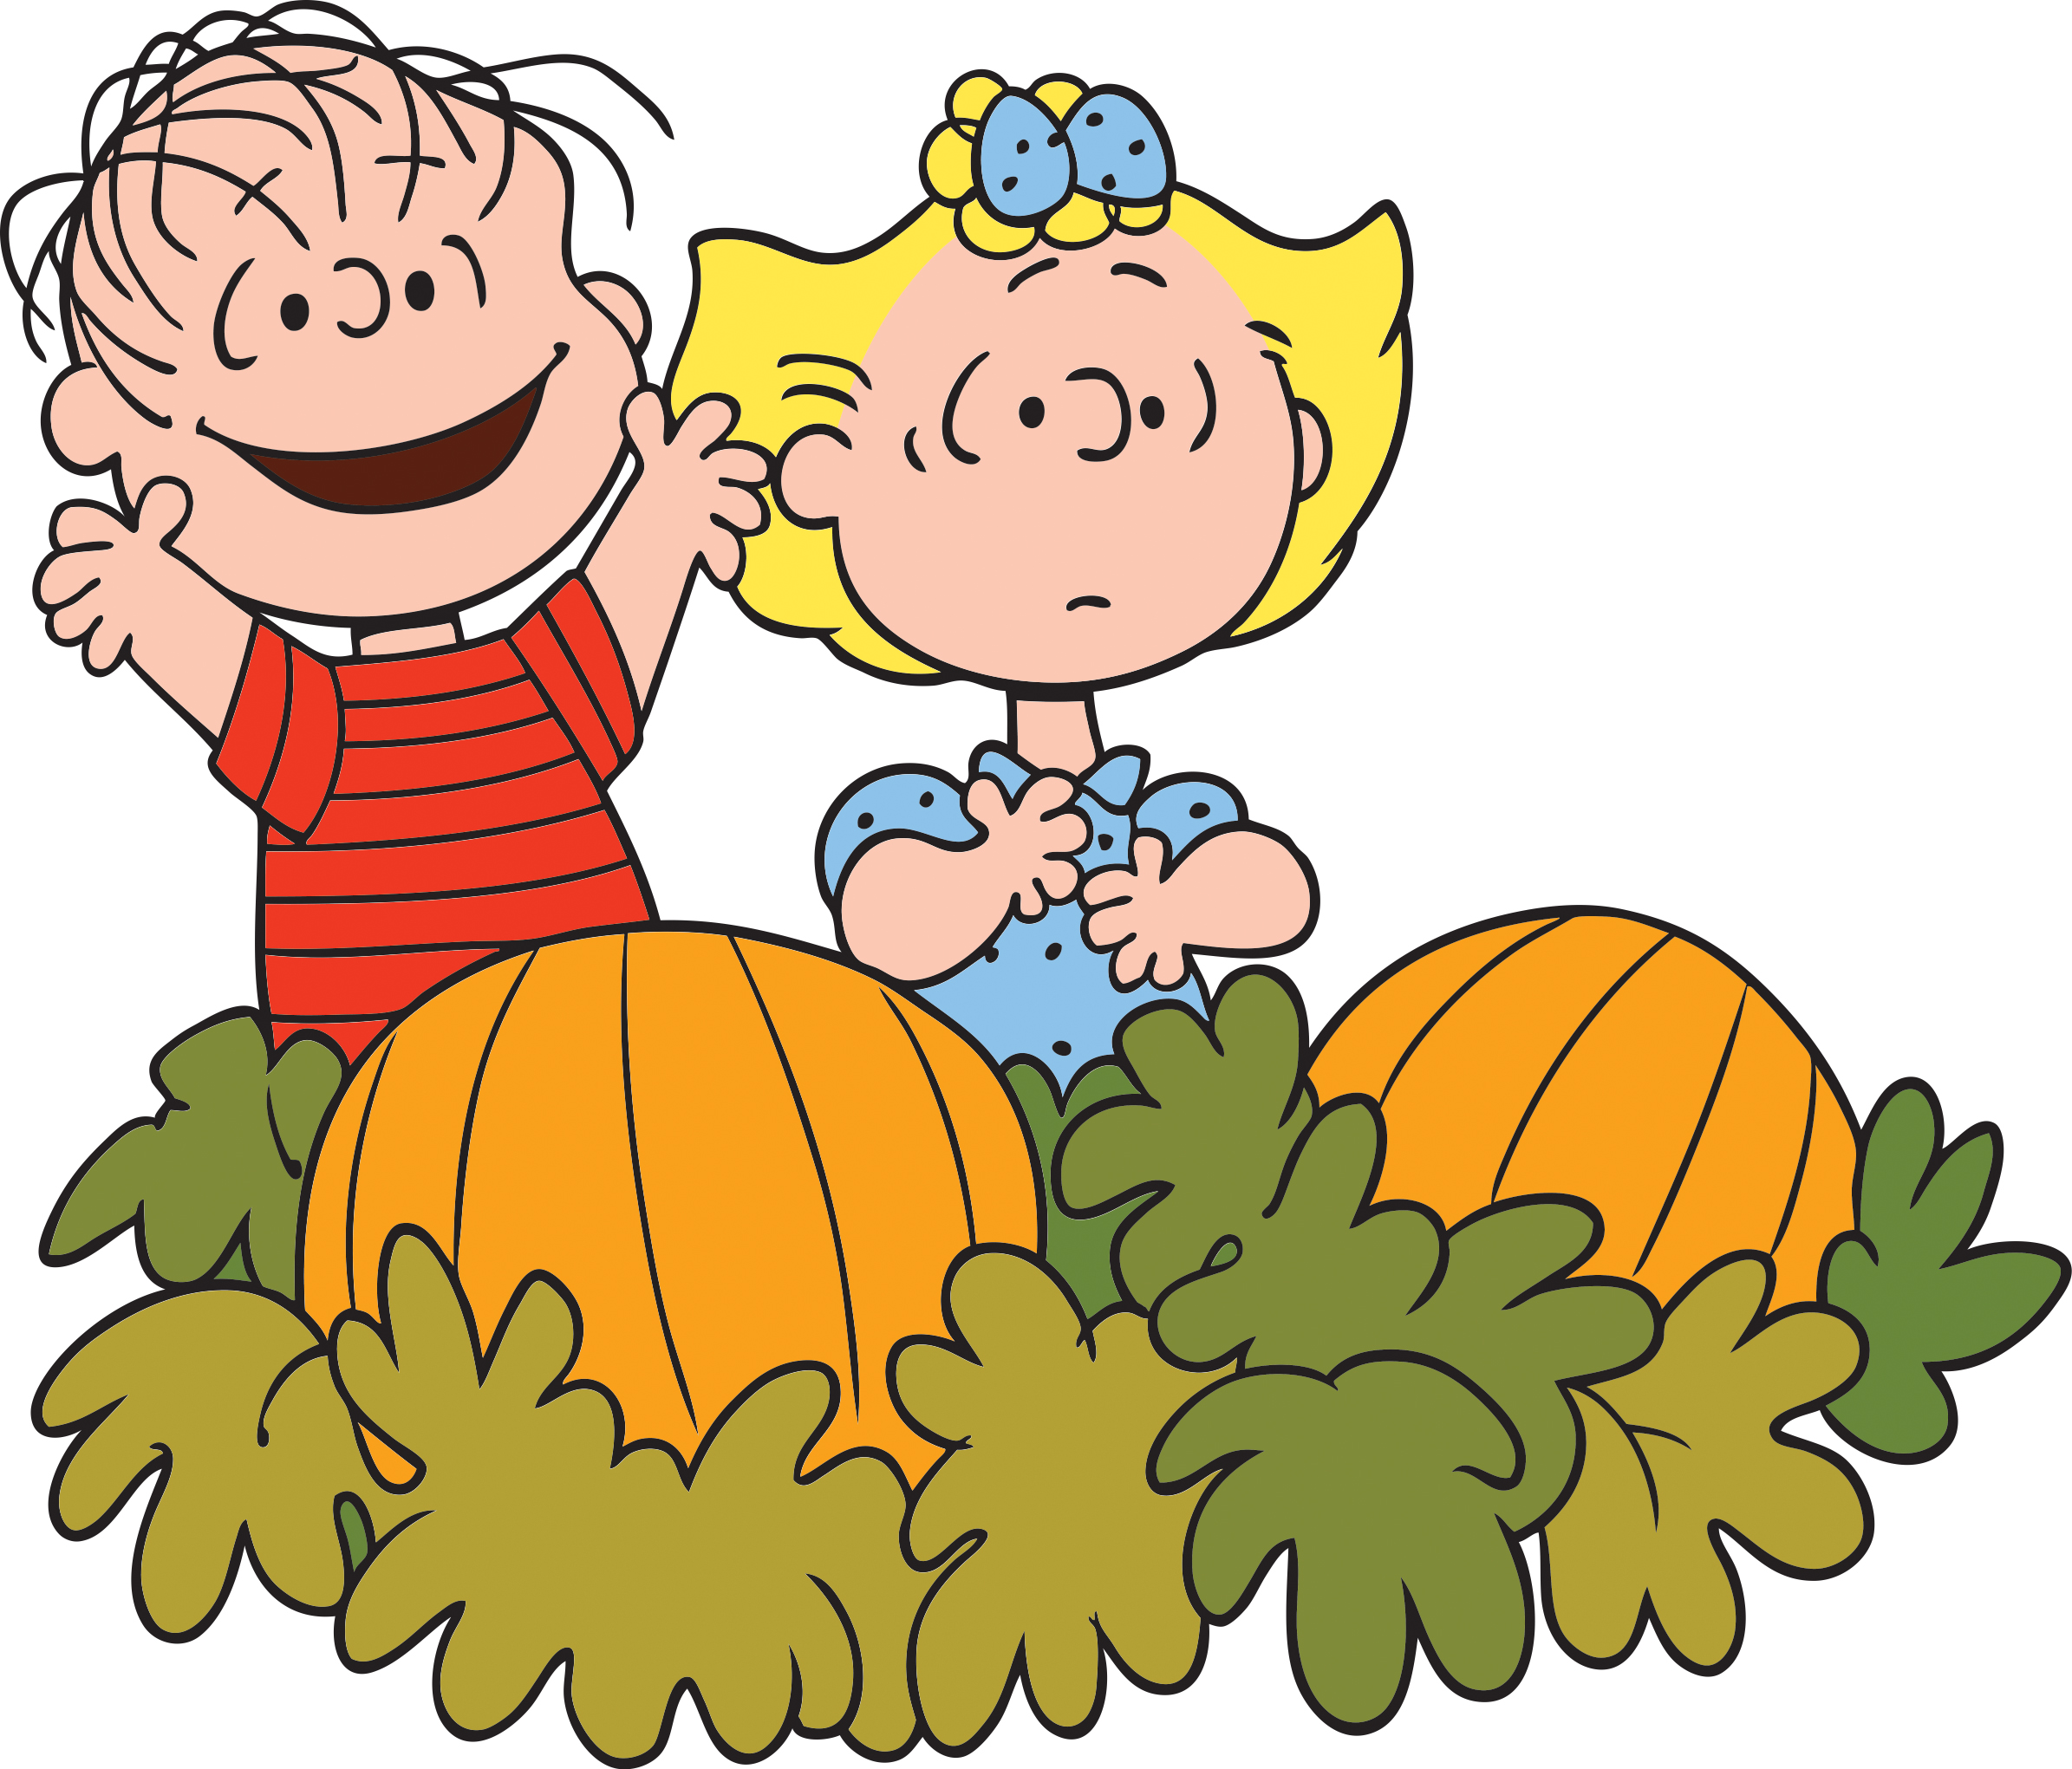 It s the great pumpkin charlie brown clipart picture transparent library Great Pumpkin Charlie Brown Clipart at GetDrawings.com | Free for ... picture transparent library